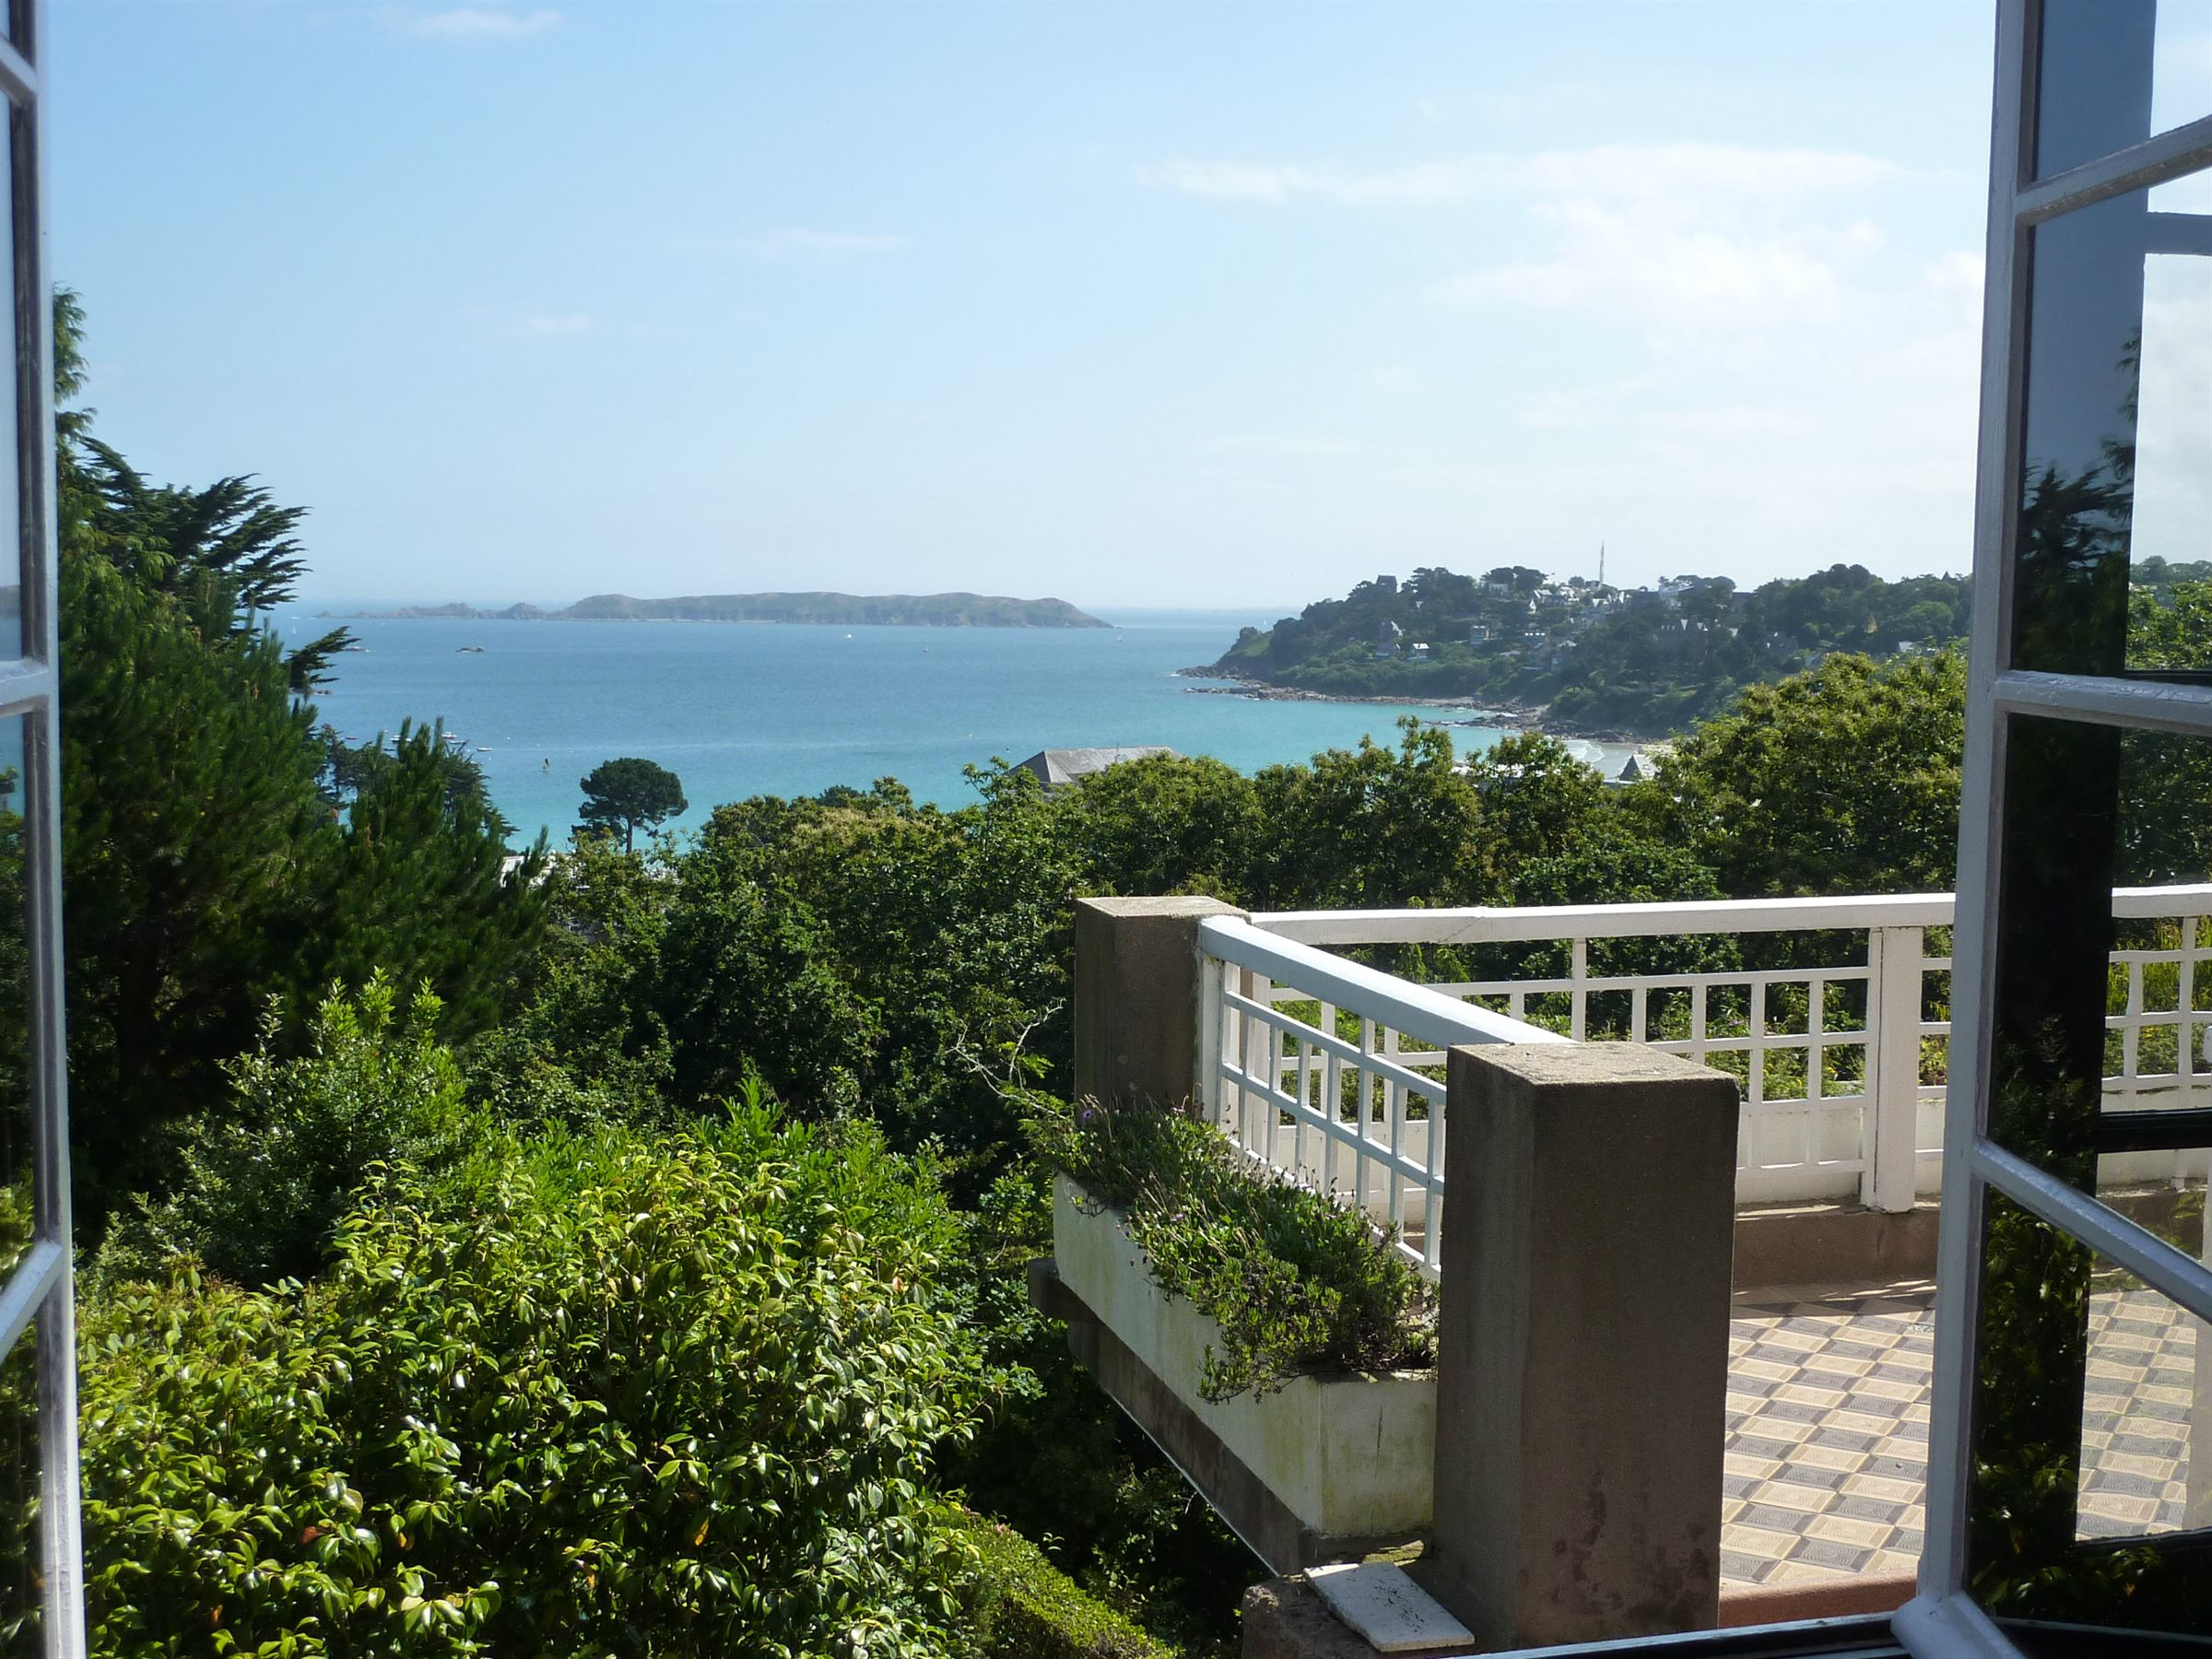 Property For Sale at Perros Guirec Villa with sea view 400m from the beach